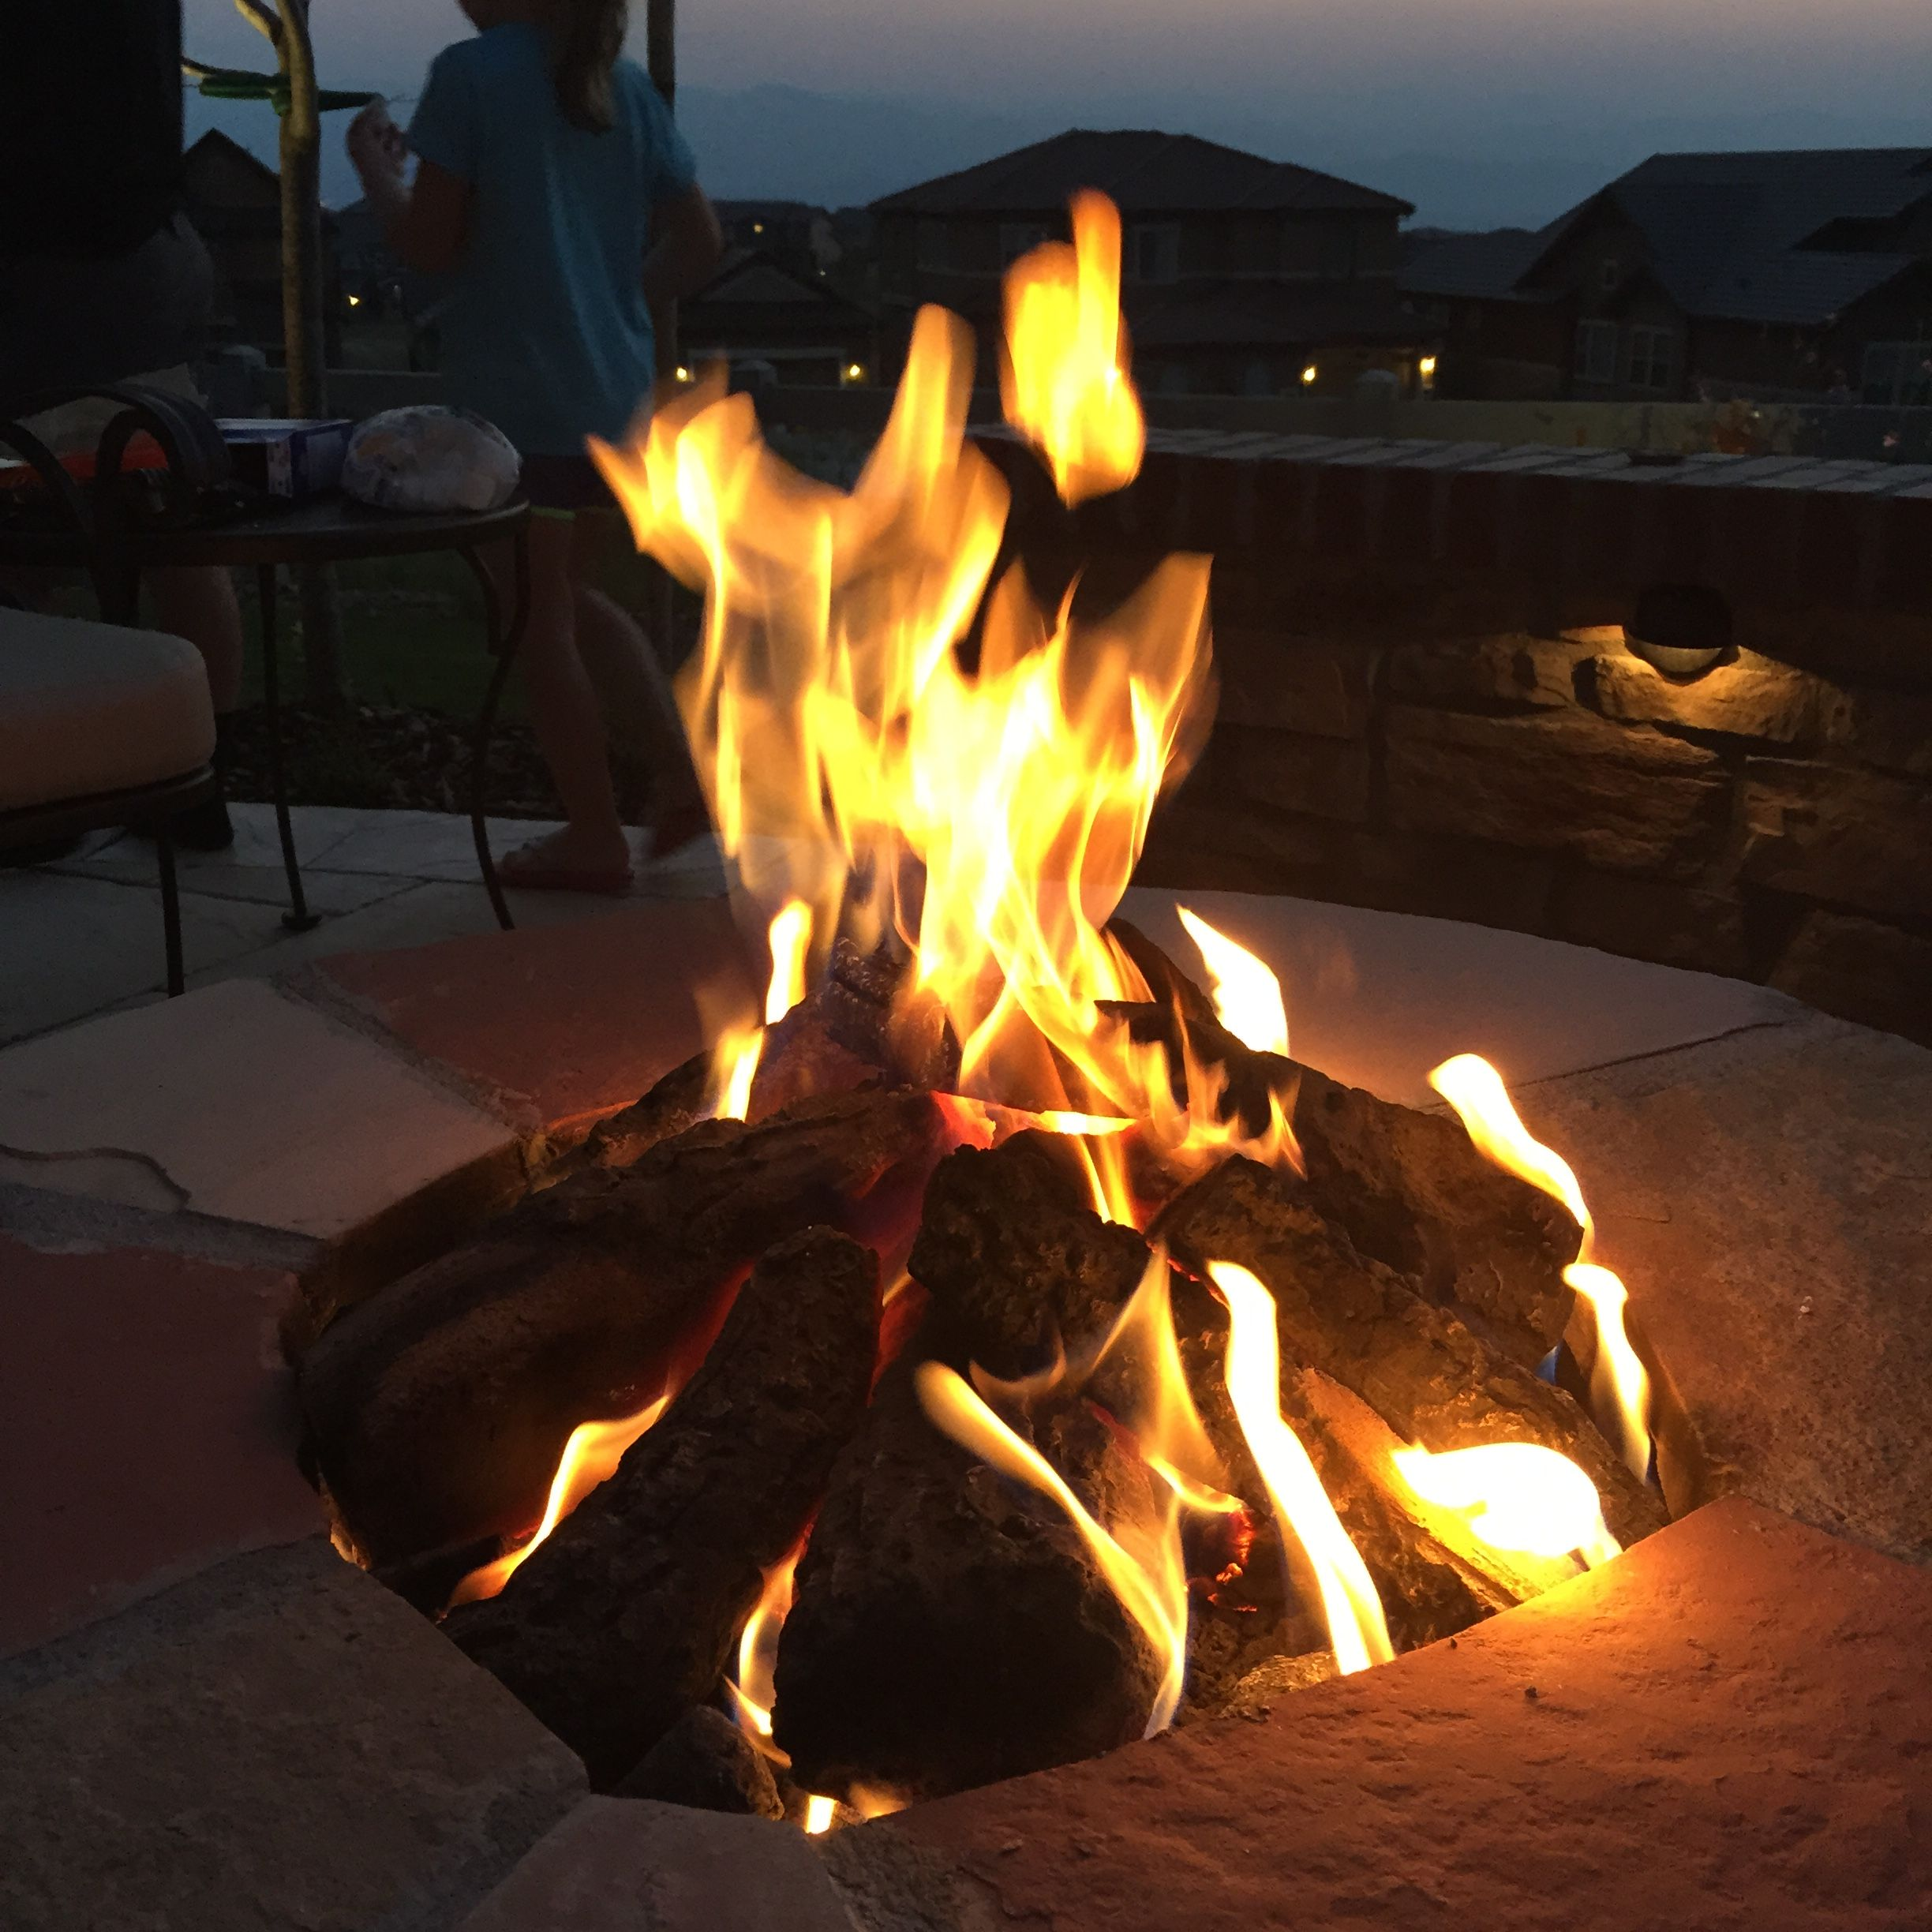 We Make Big Fire Lehrer Fireplace And Patio Fire Pit Outdoor